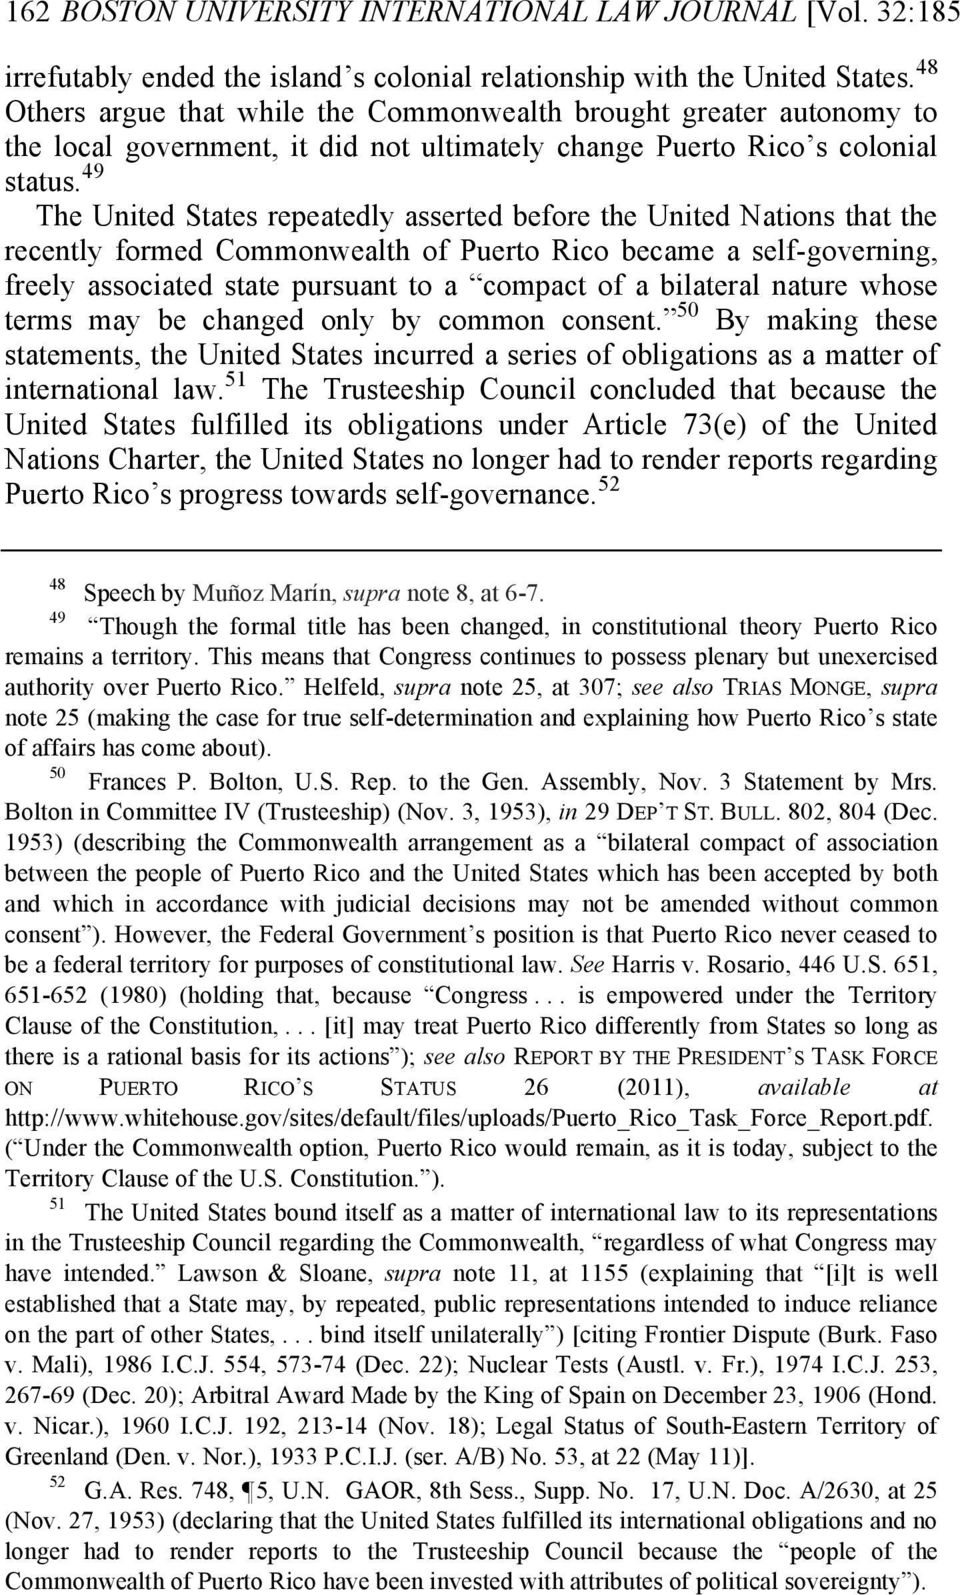 49 The United States repeatedly asserted before the United Nations that the recently formed Commonwealth of Puerto Rico became a self-governing, freely associated state pursuant to a compact of a